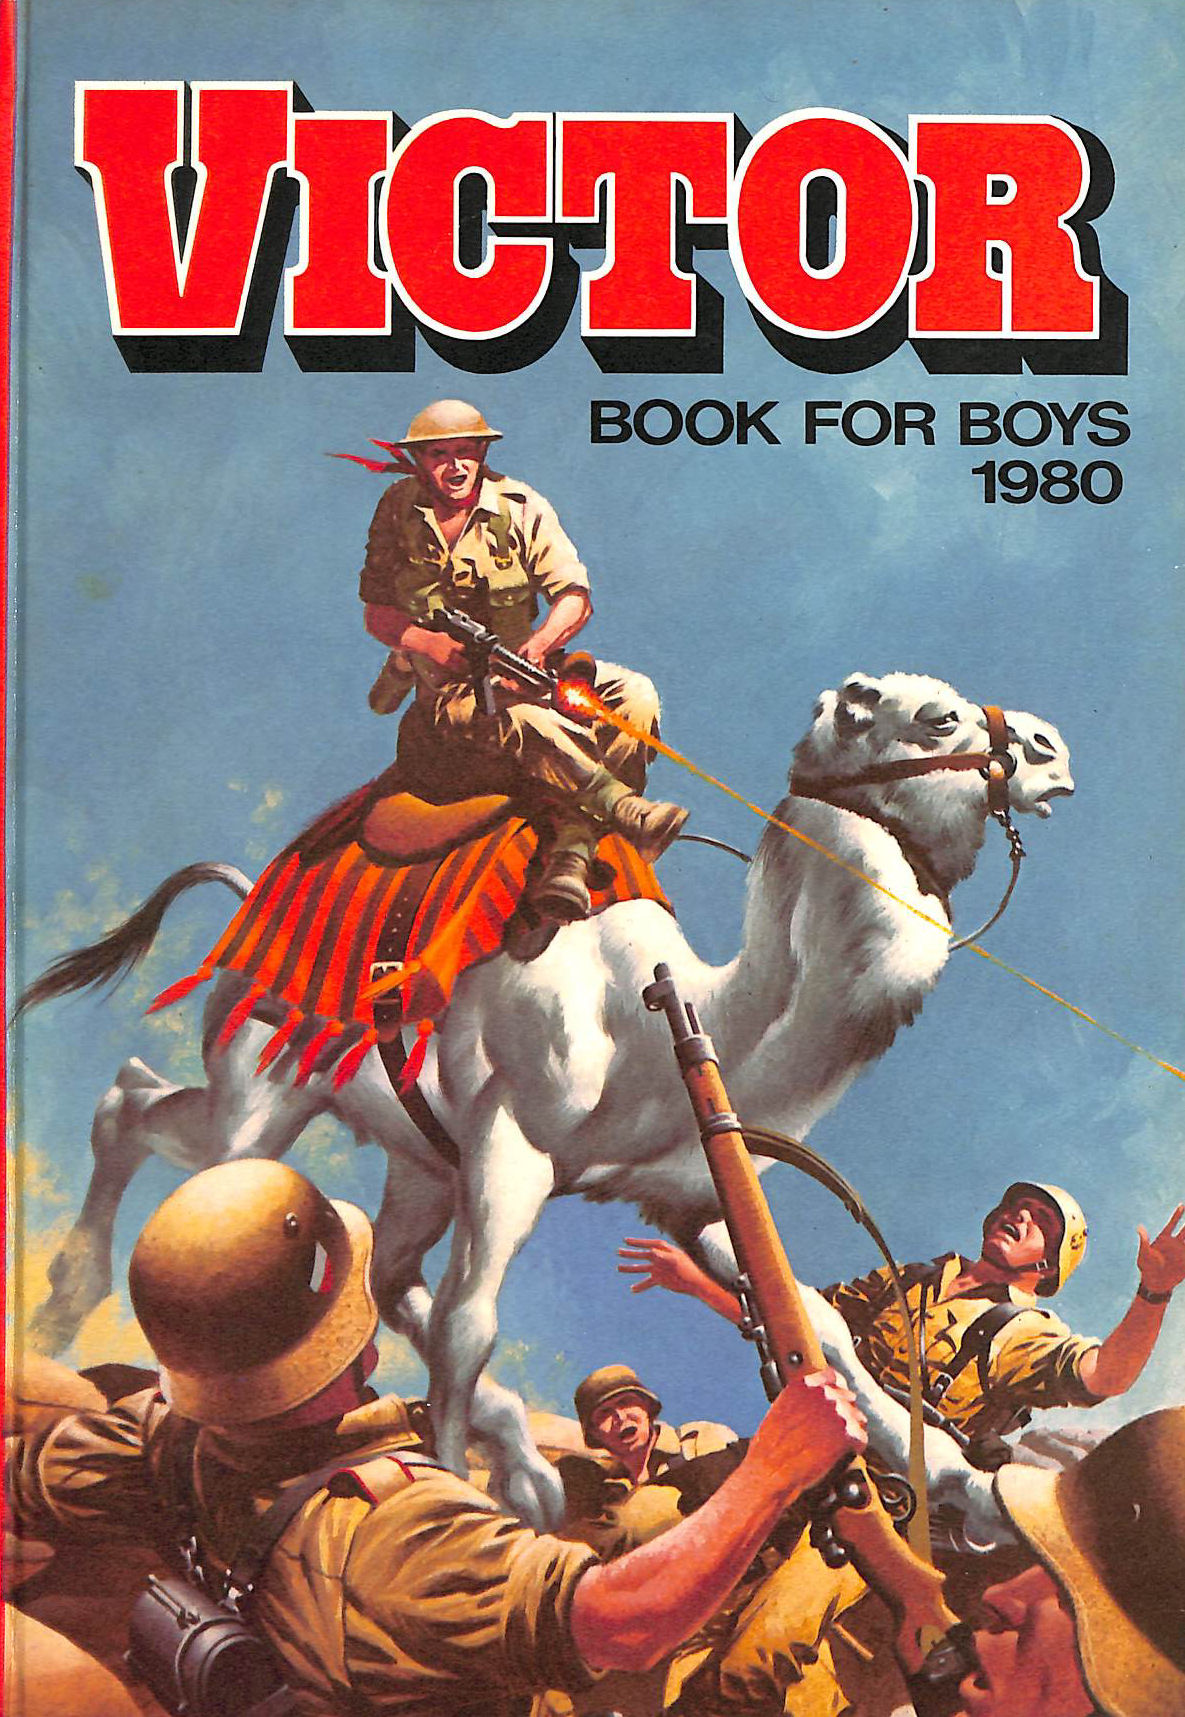 Image for Victor book for boys 1980